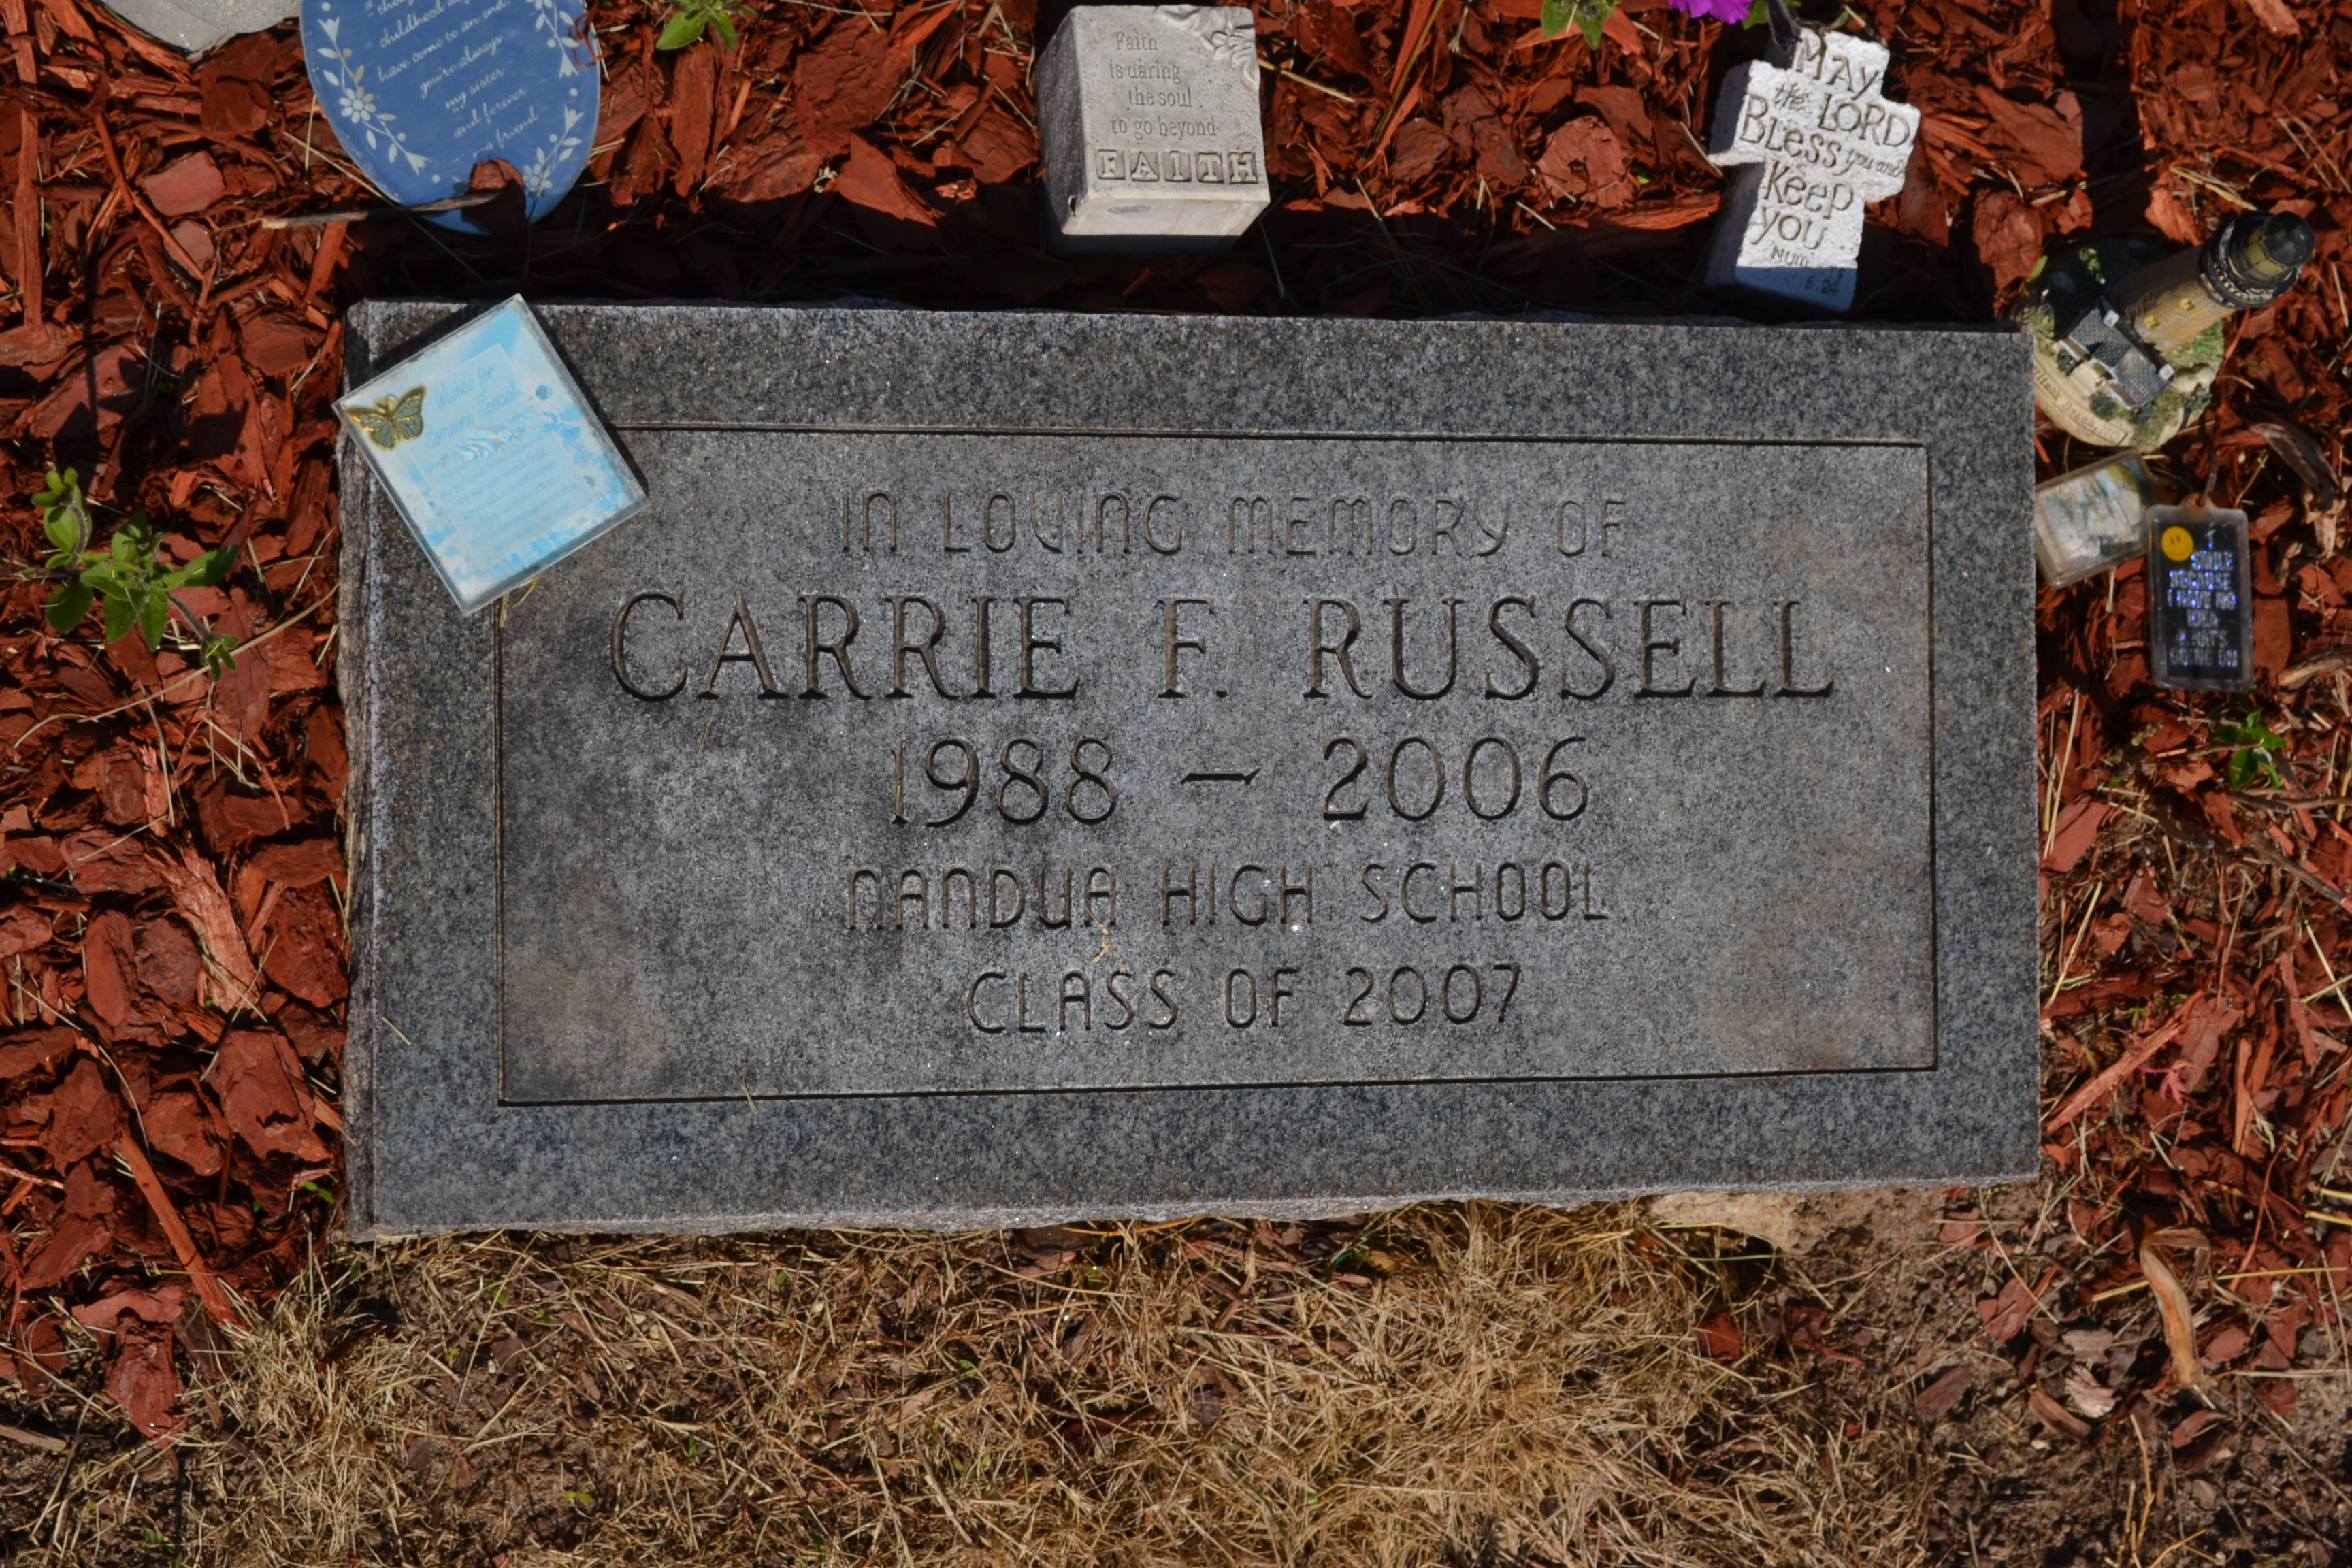 Carrie Frances Russell